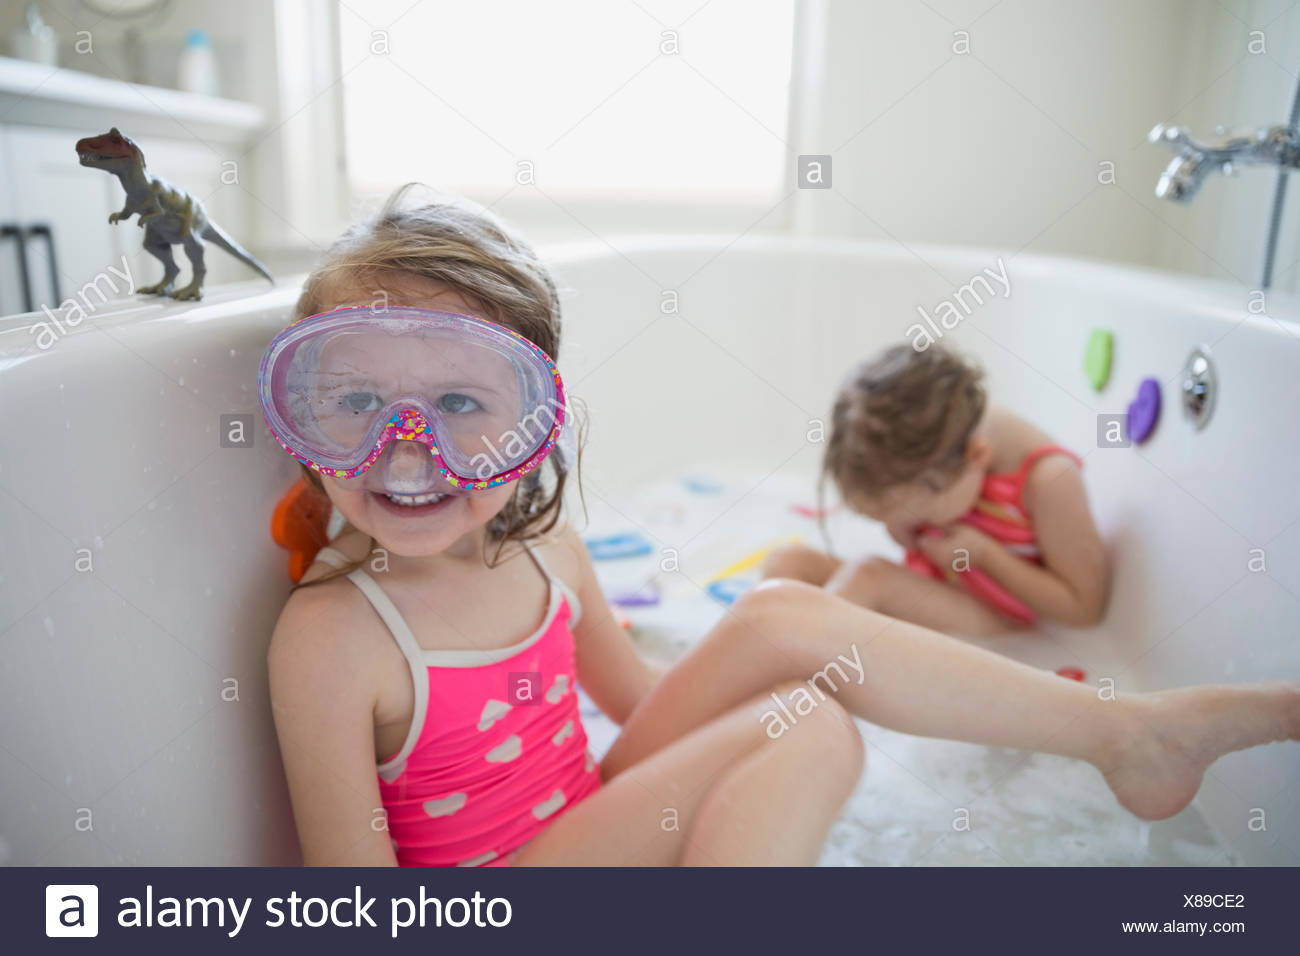 Girl bathing suit and goggles playing bath - Stock Image